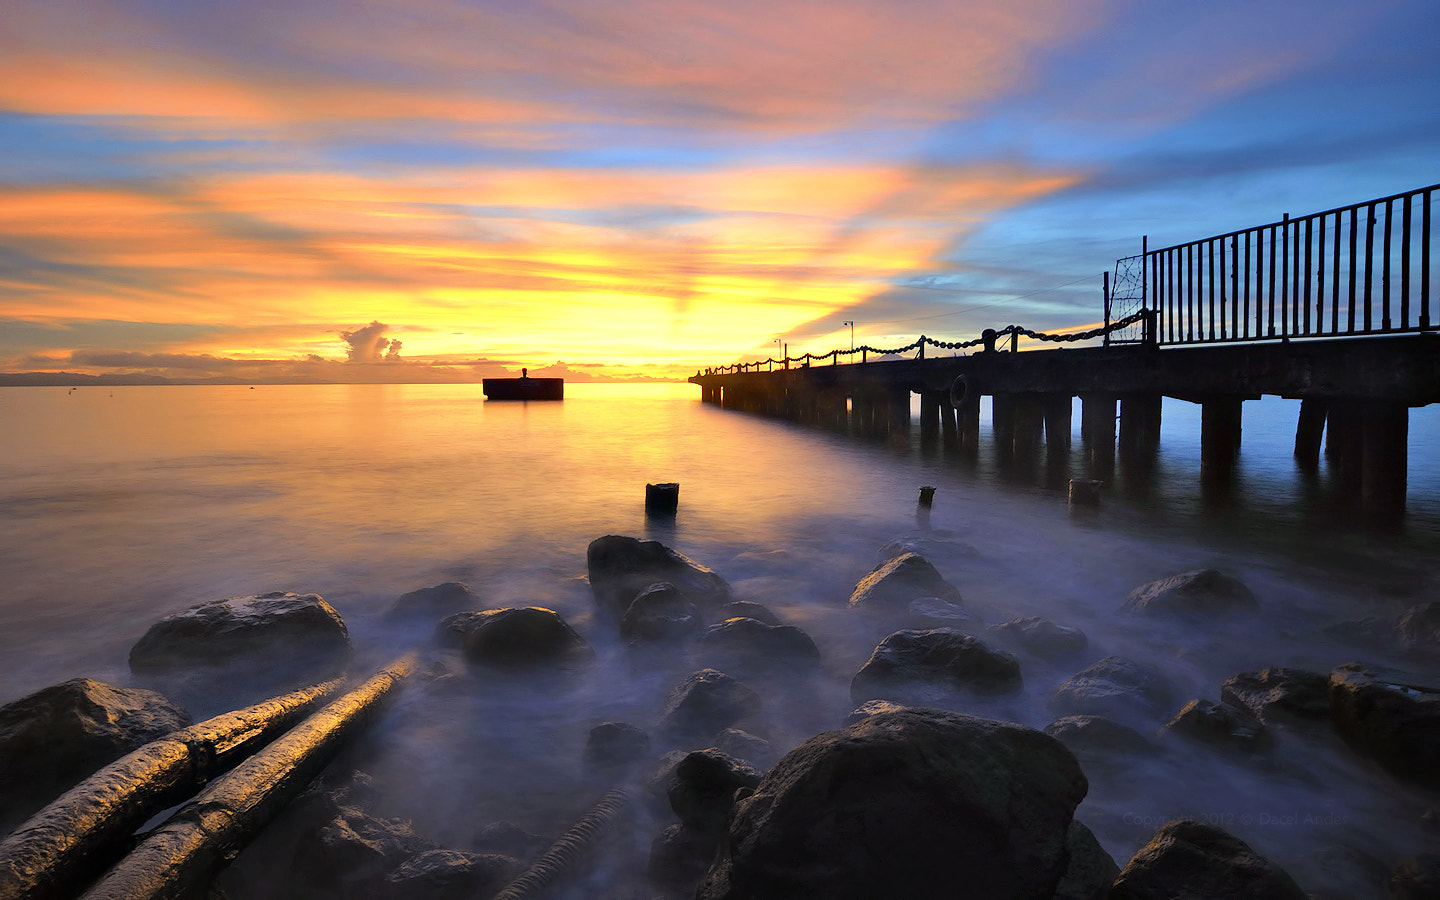 Photograph S u n r i s e by Dacel Andes on 500px